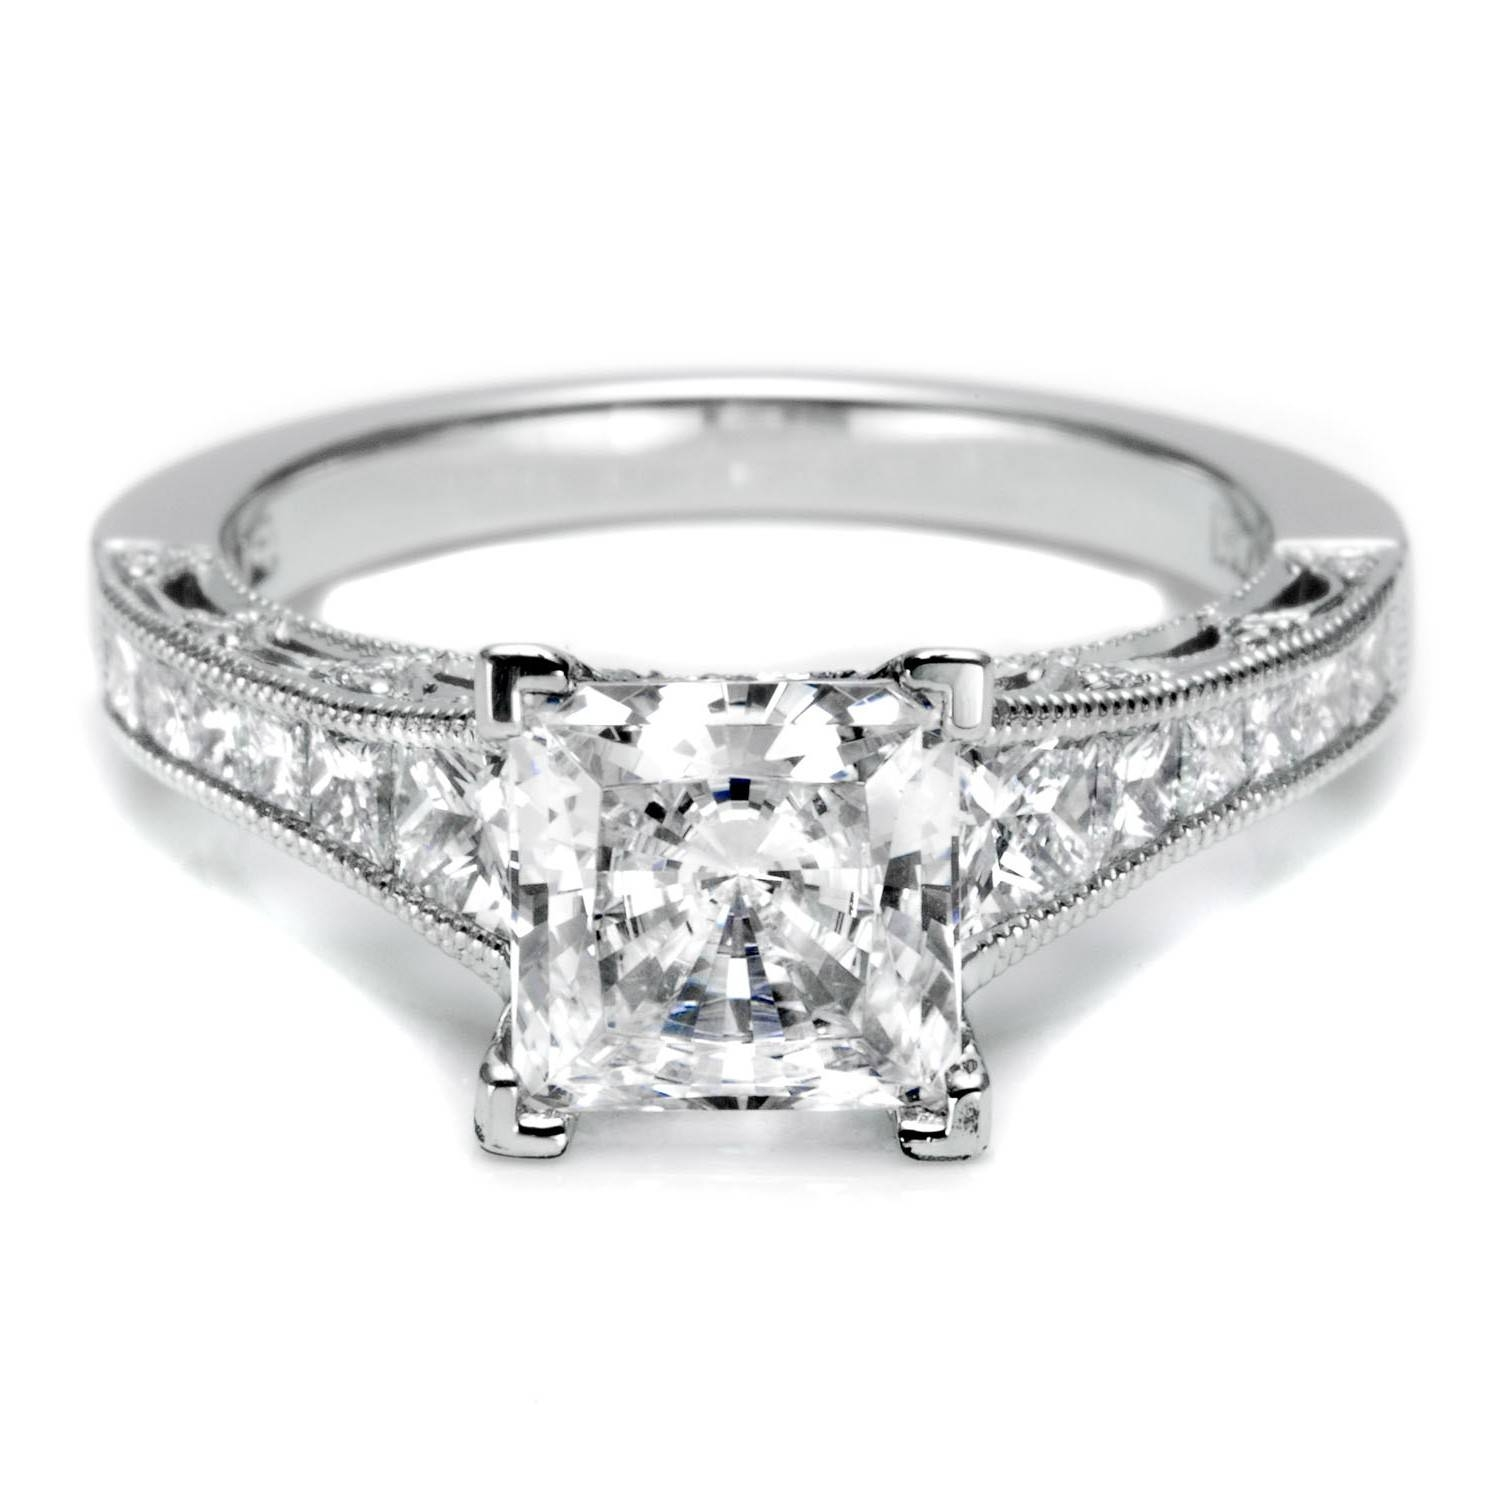 Wedding Rings : Engagement Rings Princess Cut Kay Jewelers Wedding With Regard To Simple Modern Engagement Rings (View 11 of 15)